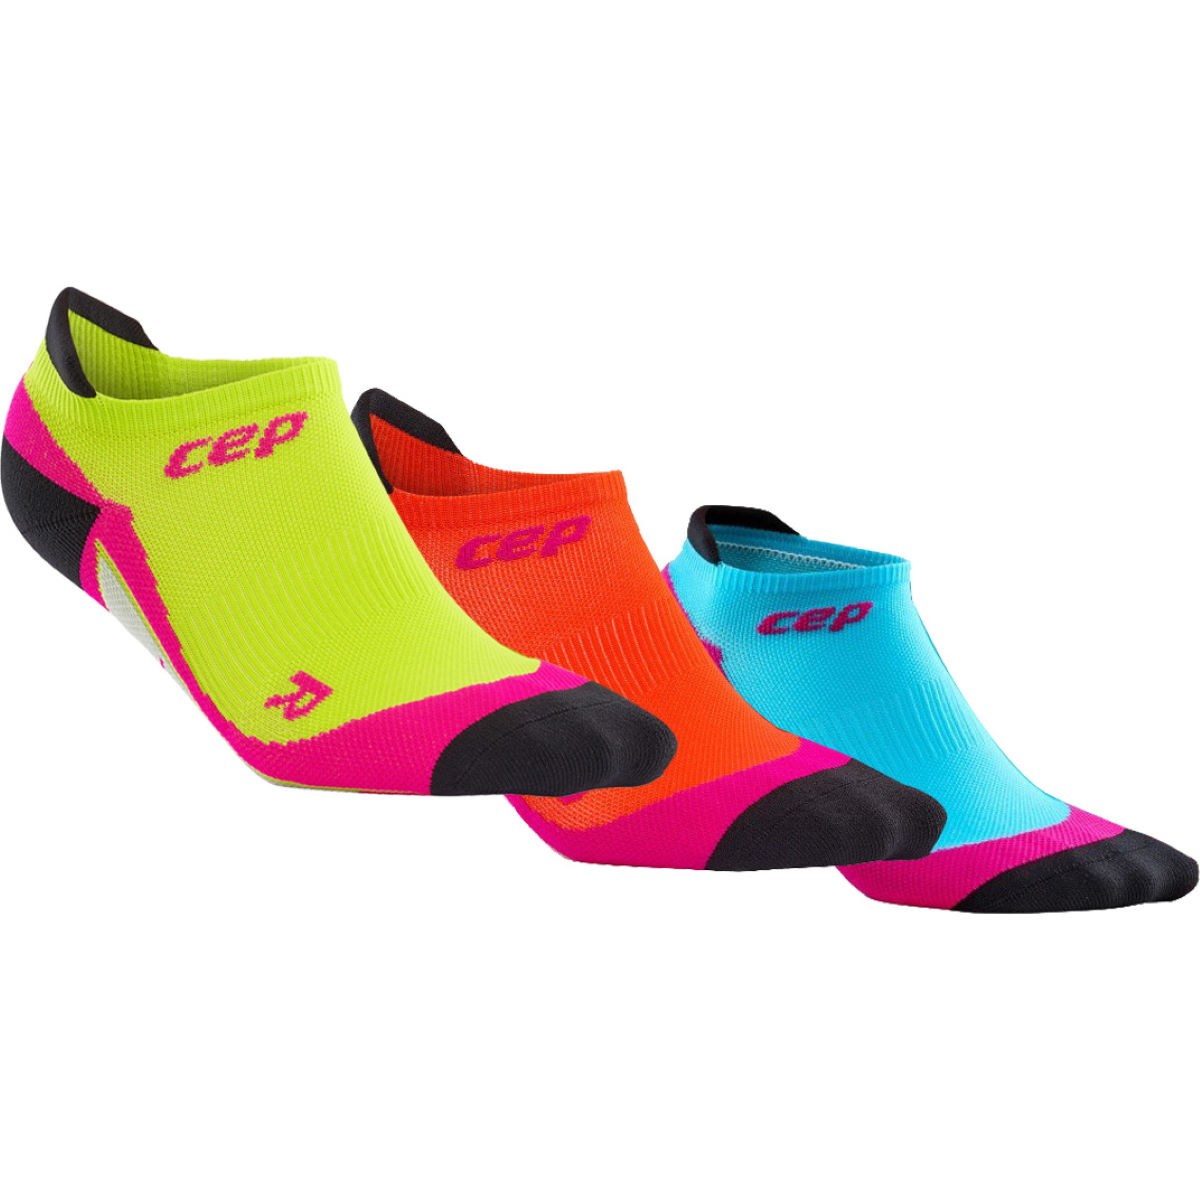 Calcetines CEP Dynamic+ para mujer (3 pares, caña invisible) - Calcetines para correr